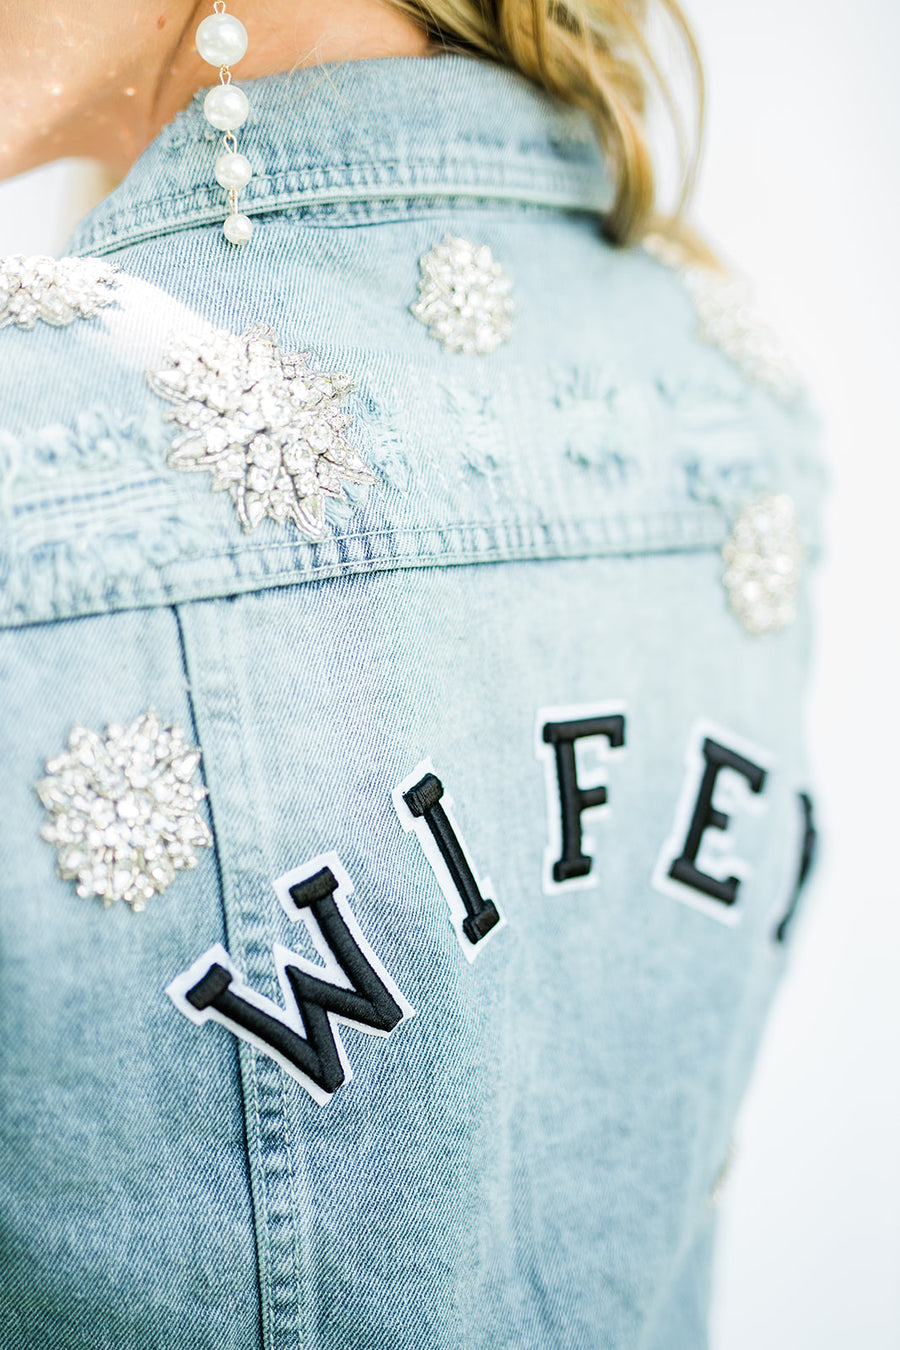 Wifey Denim Jacket- Chosen by One Day - The Beach Bride by Chic Parisien, a destination for beach weddings, bachelorettes and honeymoons